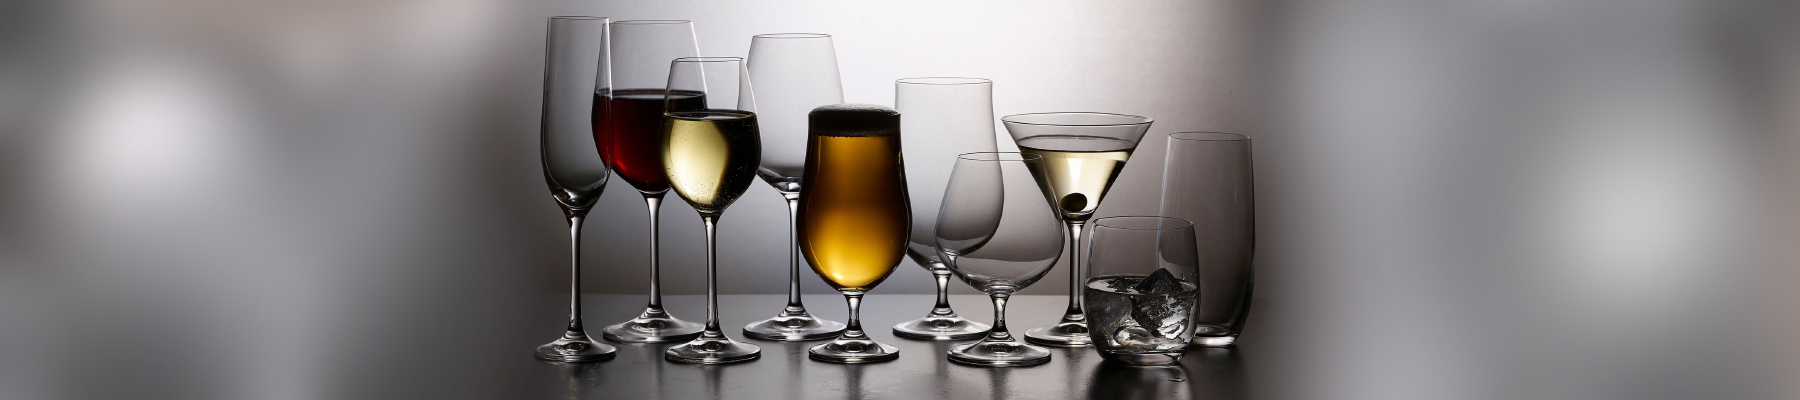 Catering Products Direct - Glassware